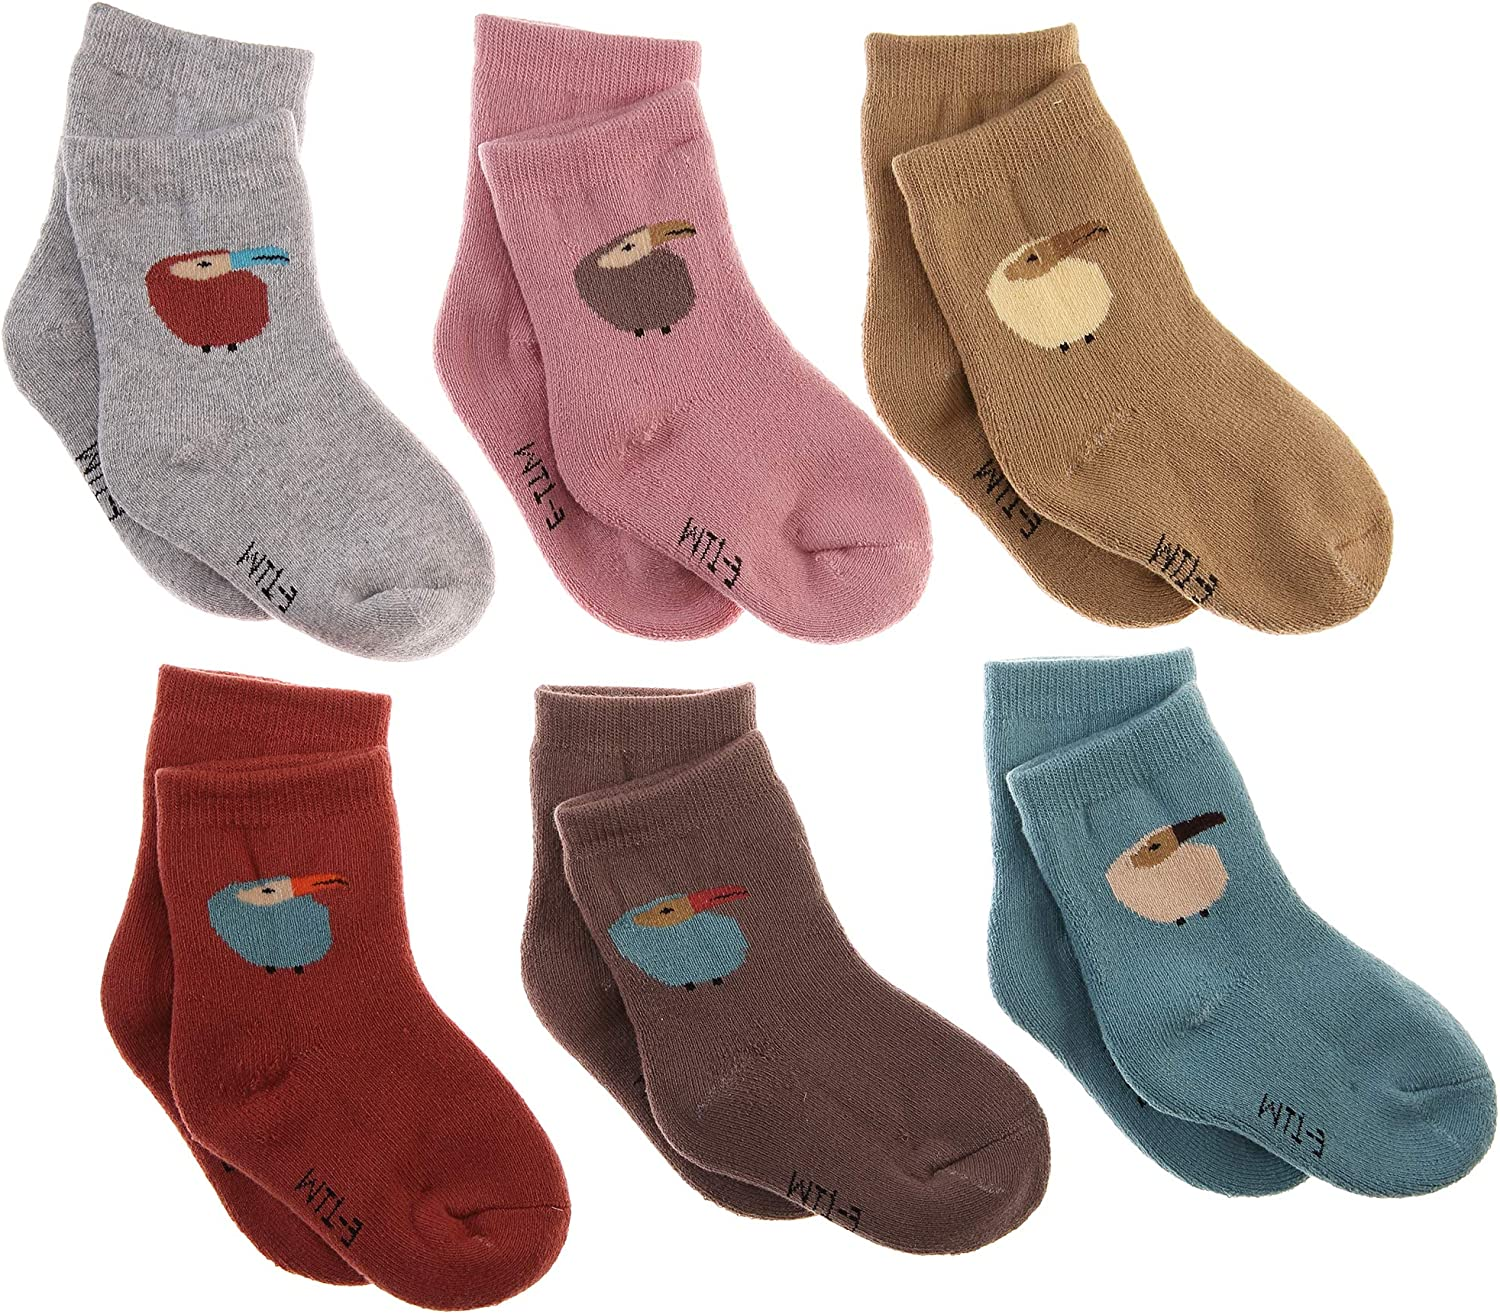 Kids Boy Girls Soft Warm Cotton Socks Thick Thermal Winter Casual Child Toddlers Baby Socks 6 Pairs